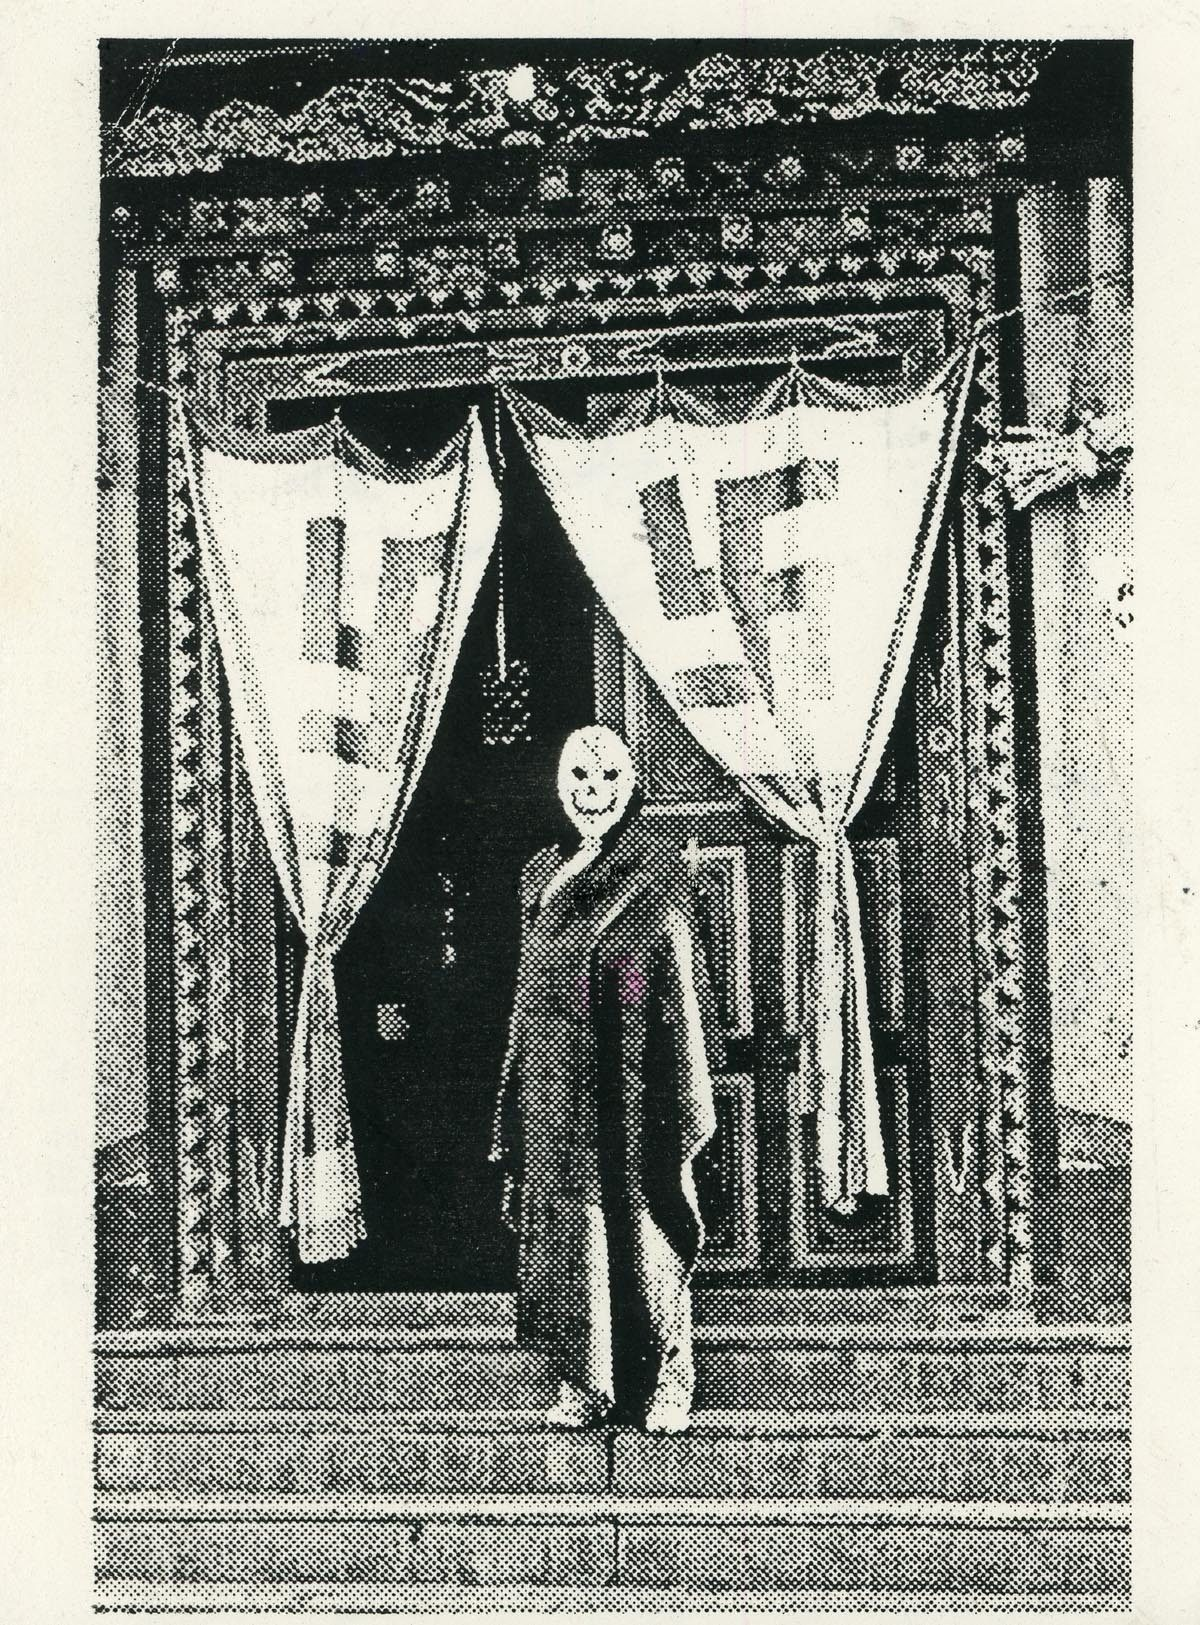 Visionary Gallery, Ira Cohen, Dangerous Visions, Card, 1991